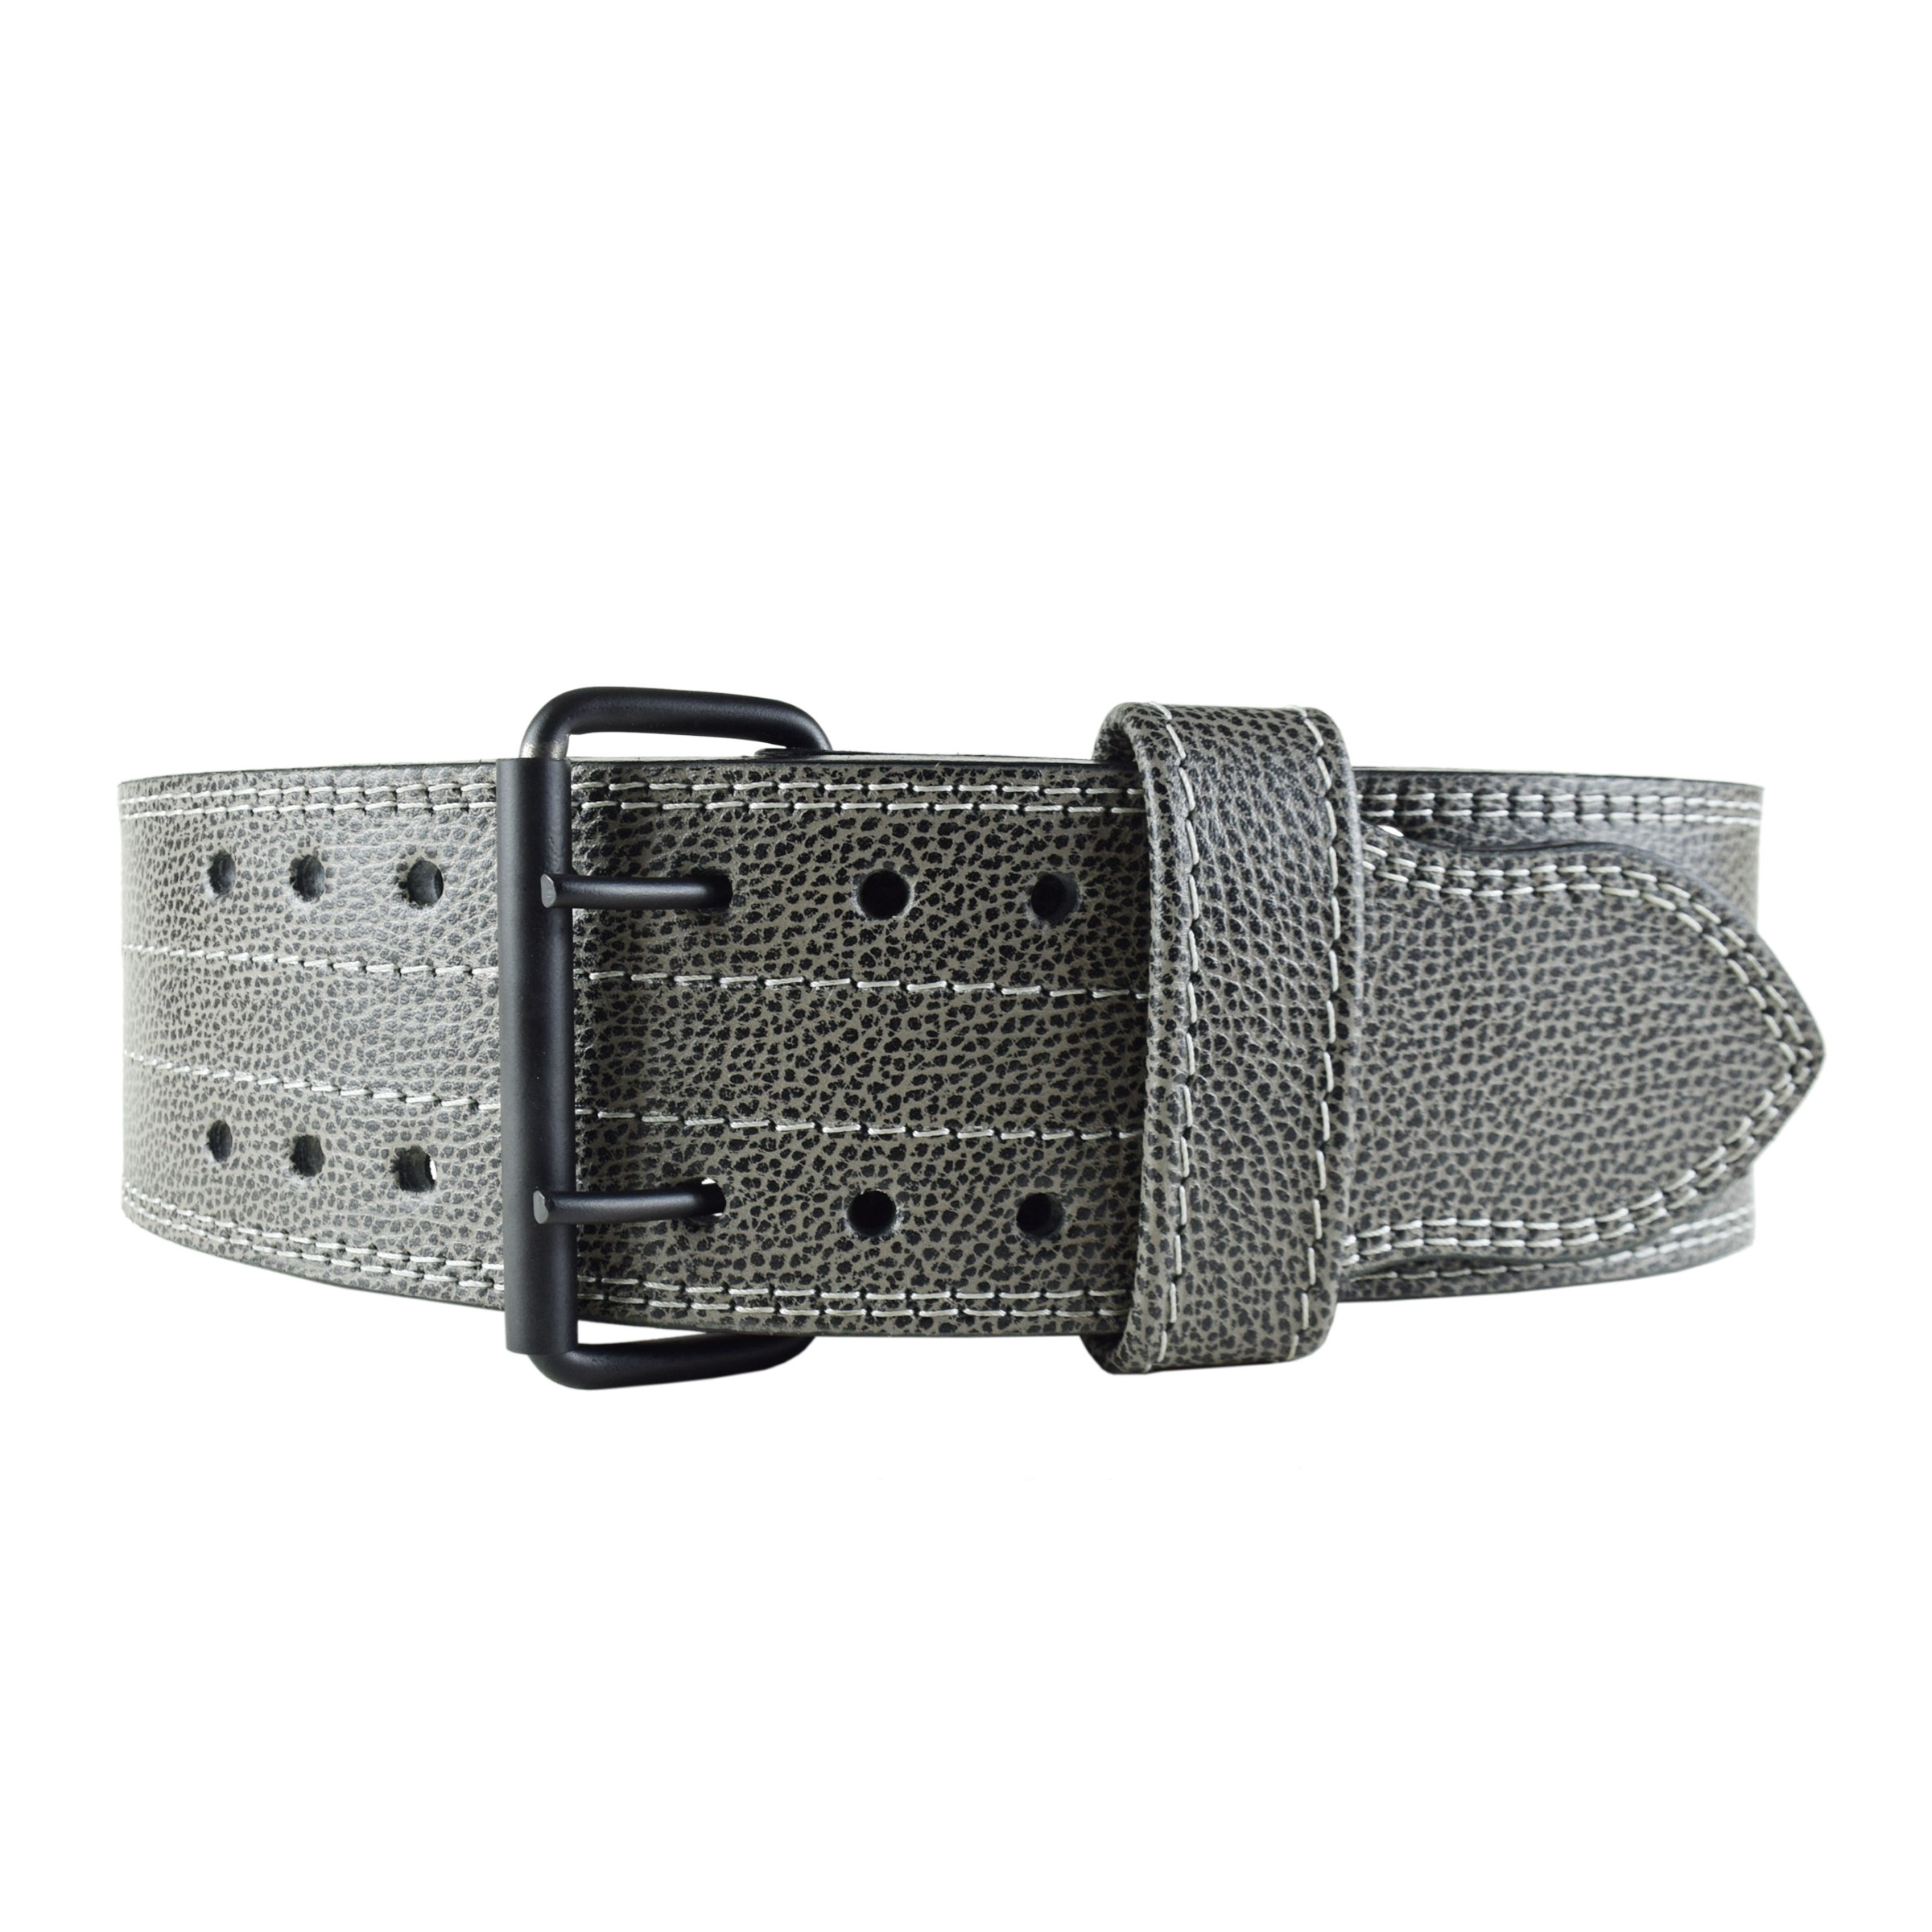 BLACK & GREY WEIGHTLIFTING BELT